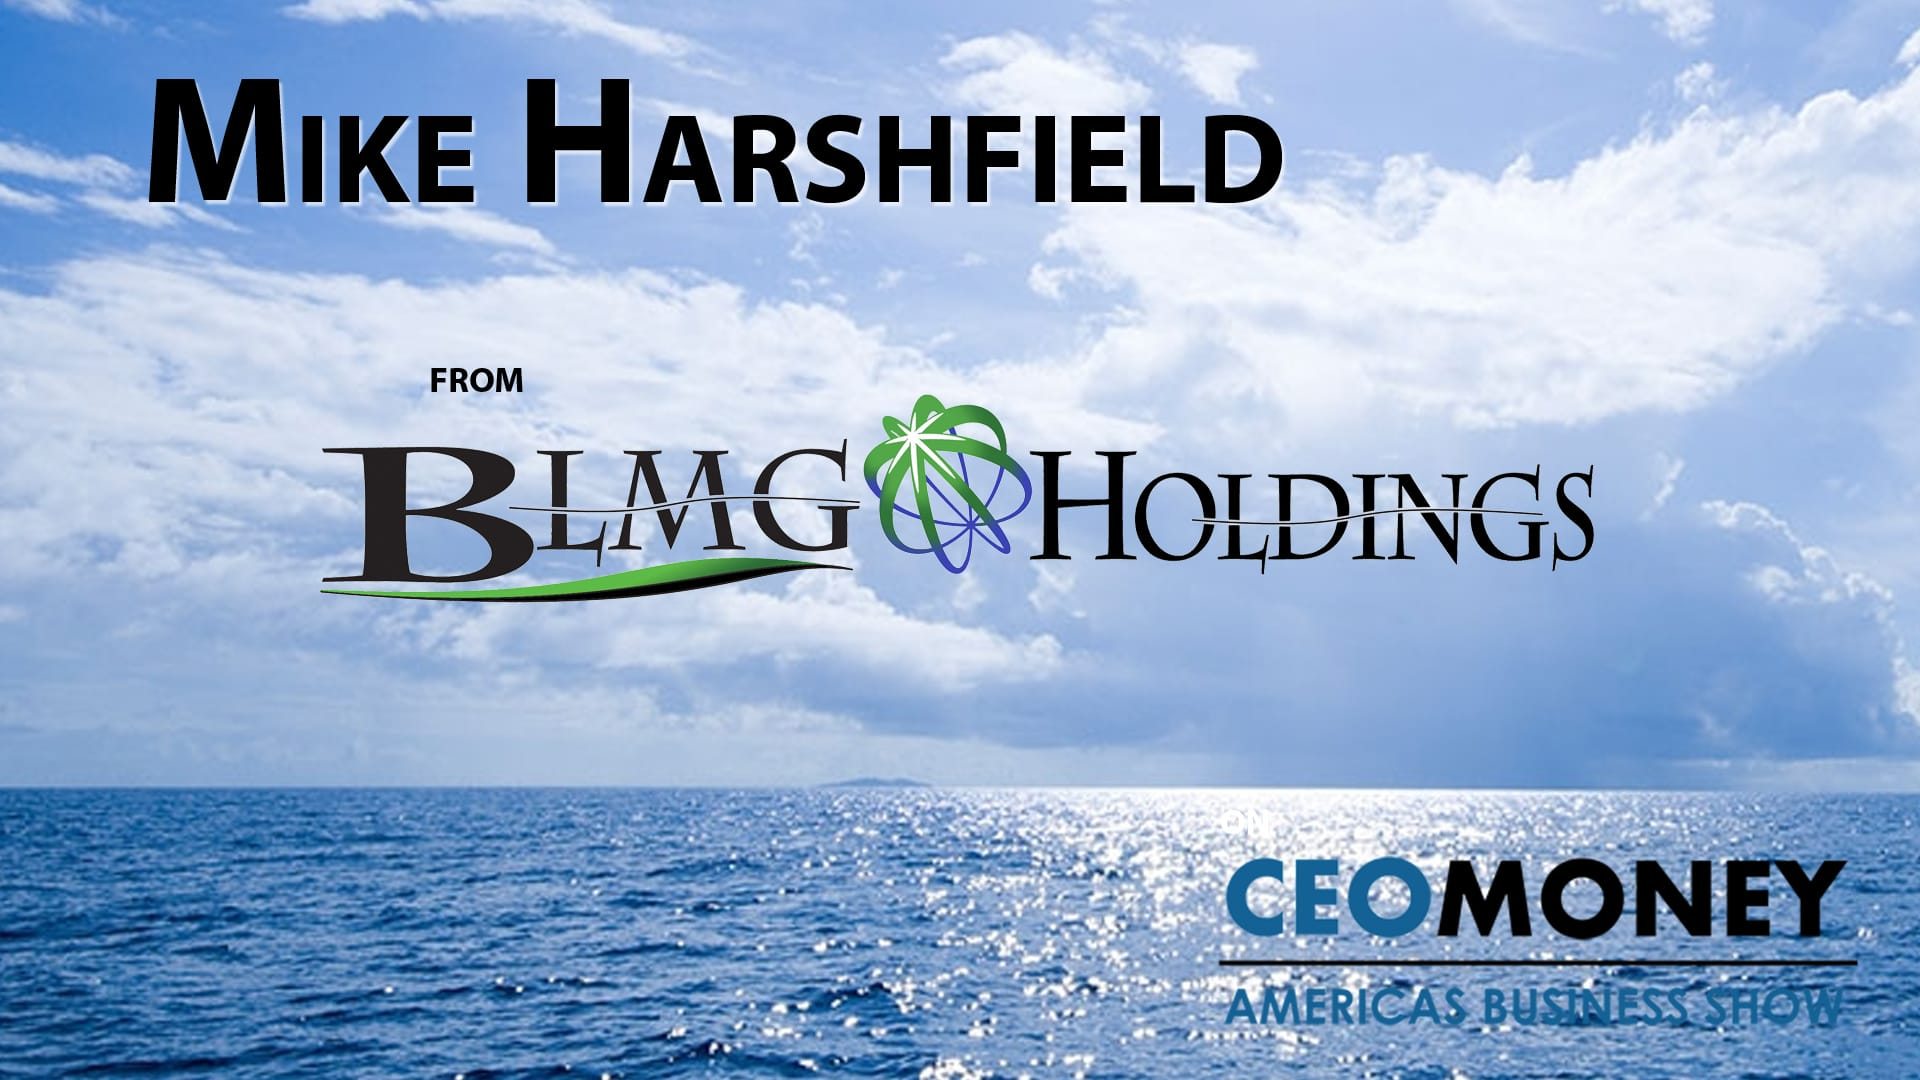 Mike Harshfield is focusing BLMG Holdings on creating a more sustainable world though better technology